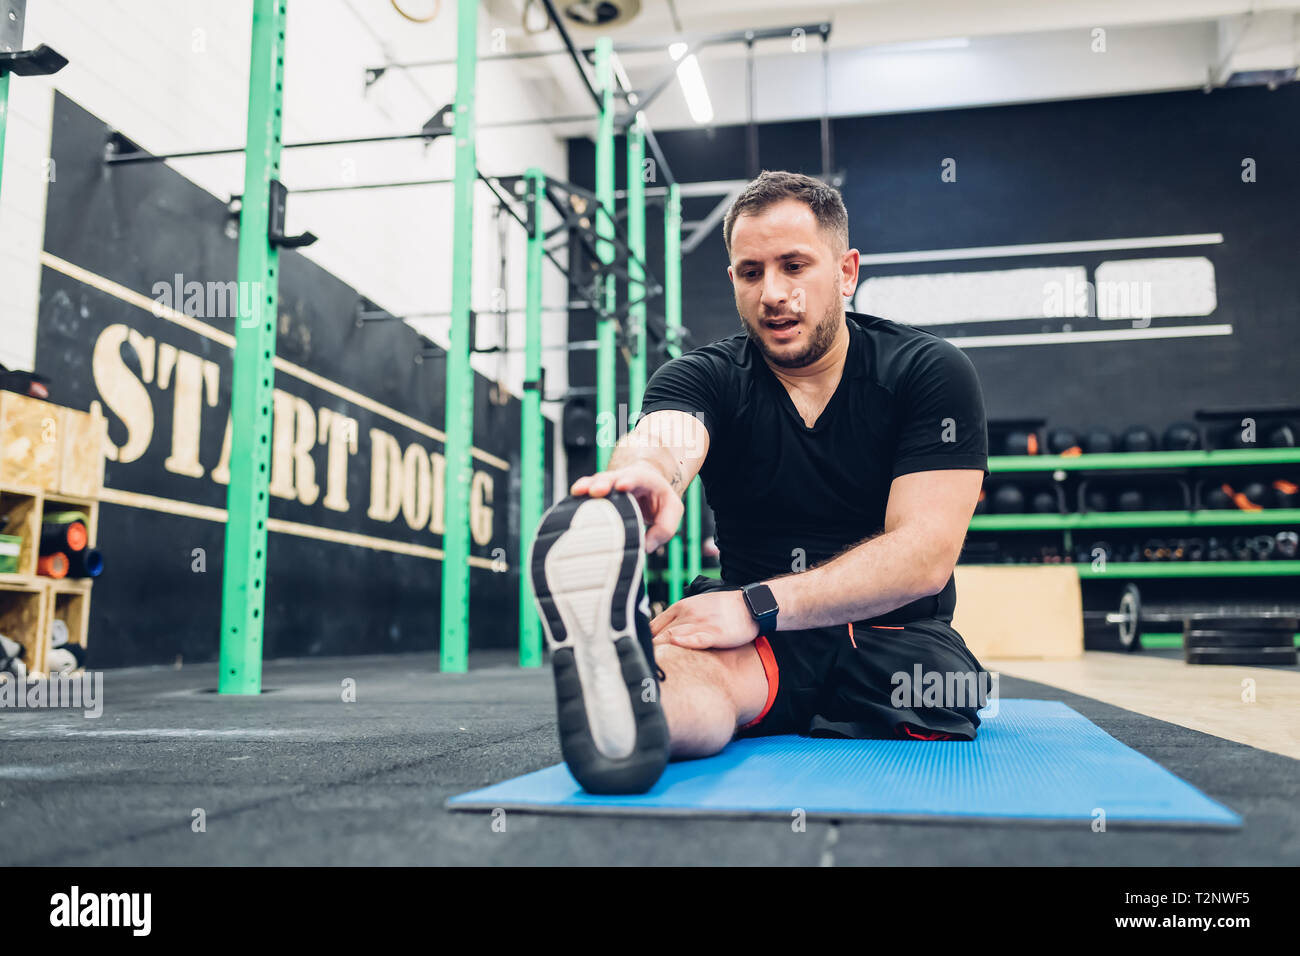 Man with disability stretching in gym - Stock Image